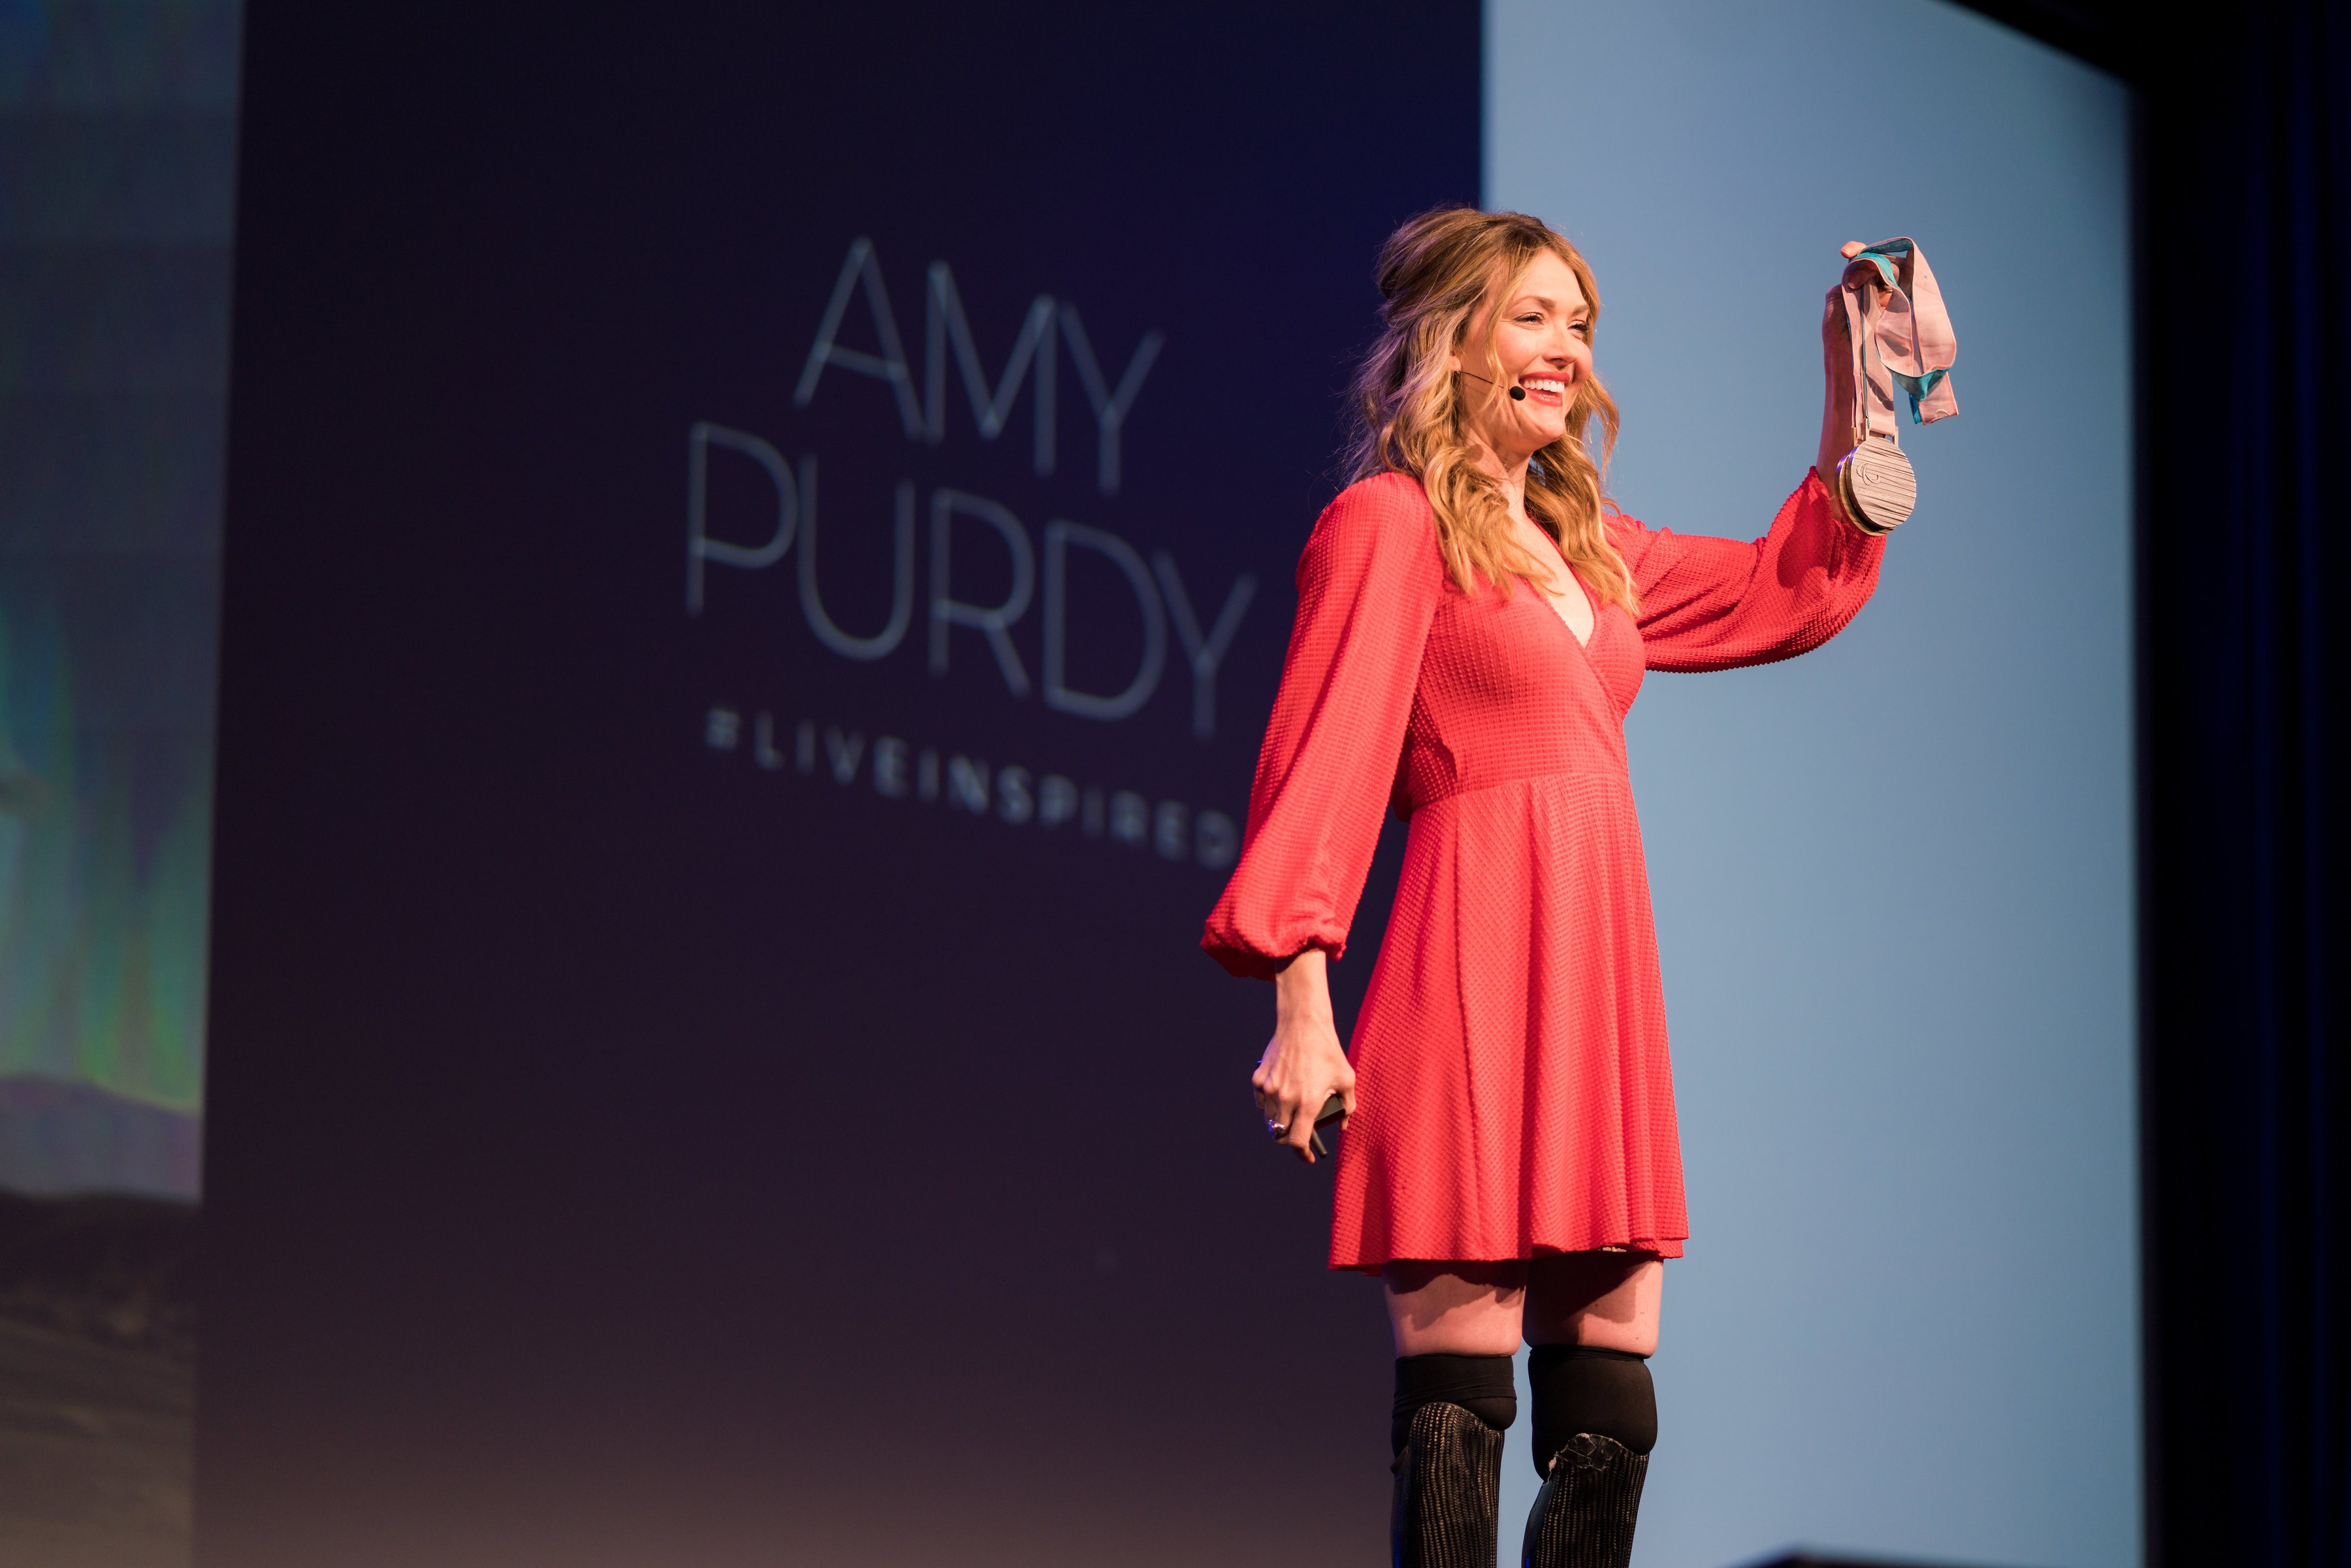 Paralympic Snowboarder Amy Purdy Inspires Thousands at #EXP18